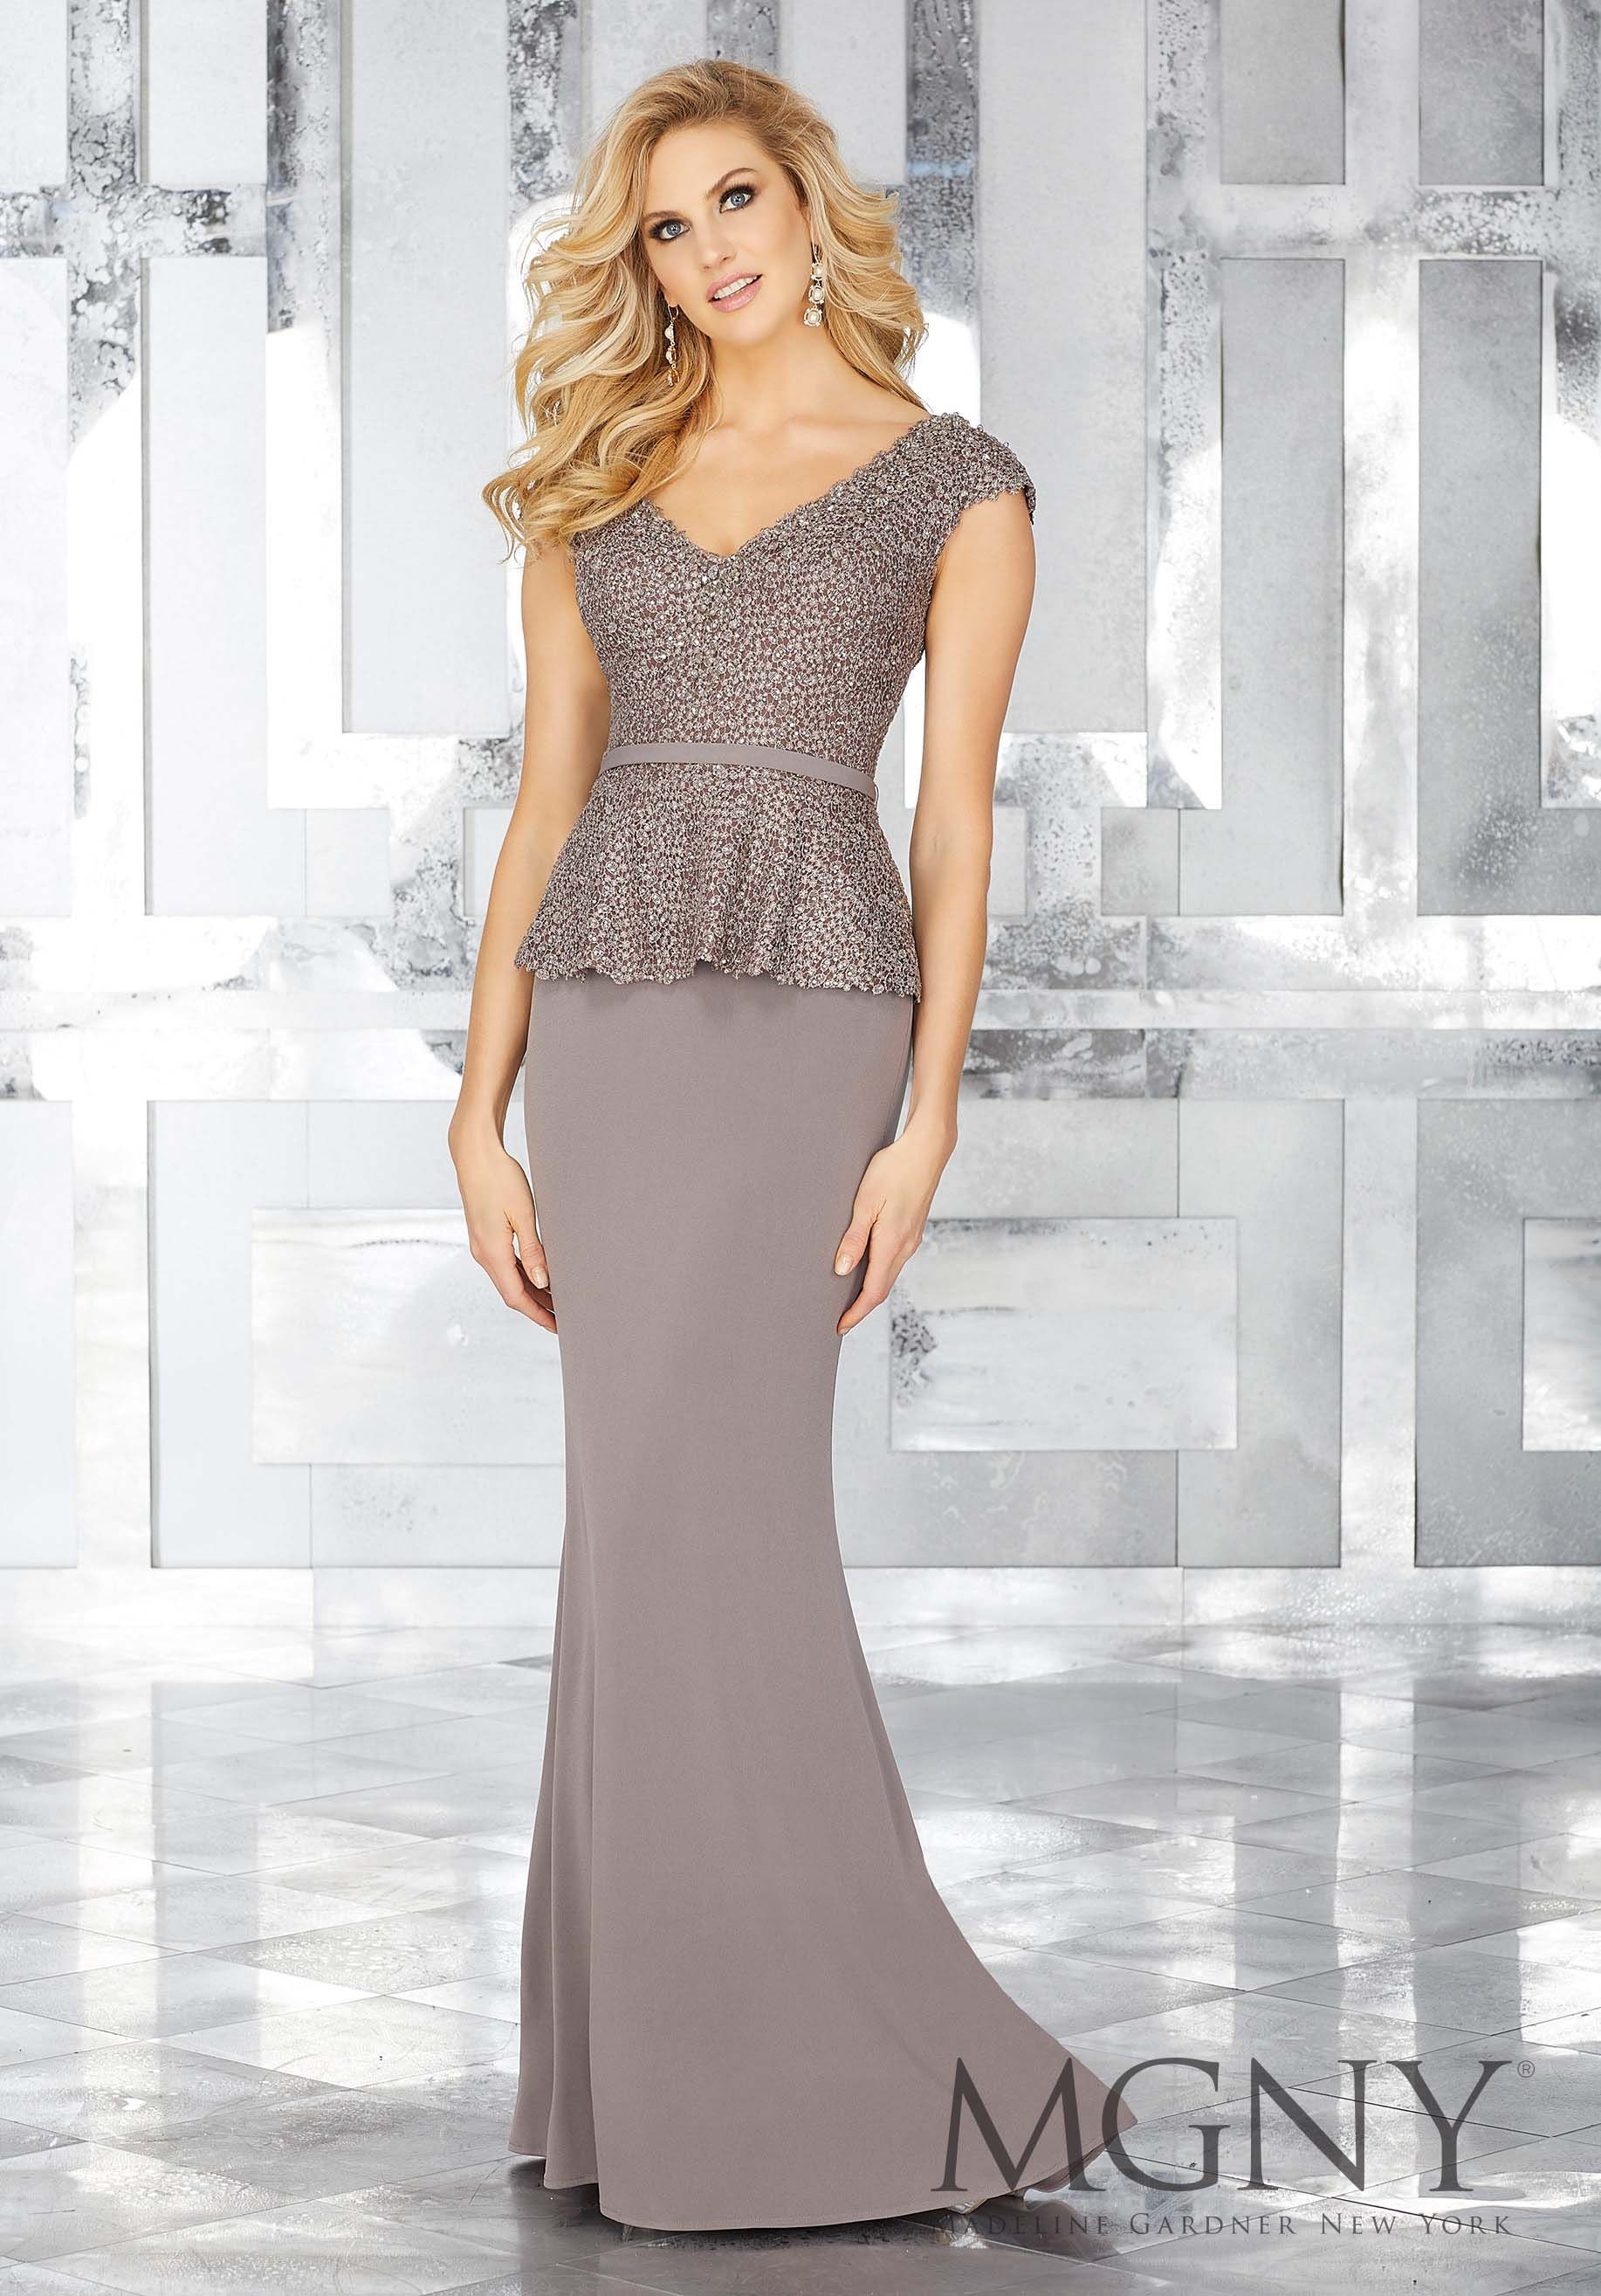 82093a34745c0 MGNY | Madeline Gardner, Evening Dress style 71604. Stunning Taupe Lace and Jersey  Special Occasion Gown with Sparkly Beading and Matching Removable Belt ...